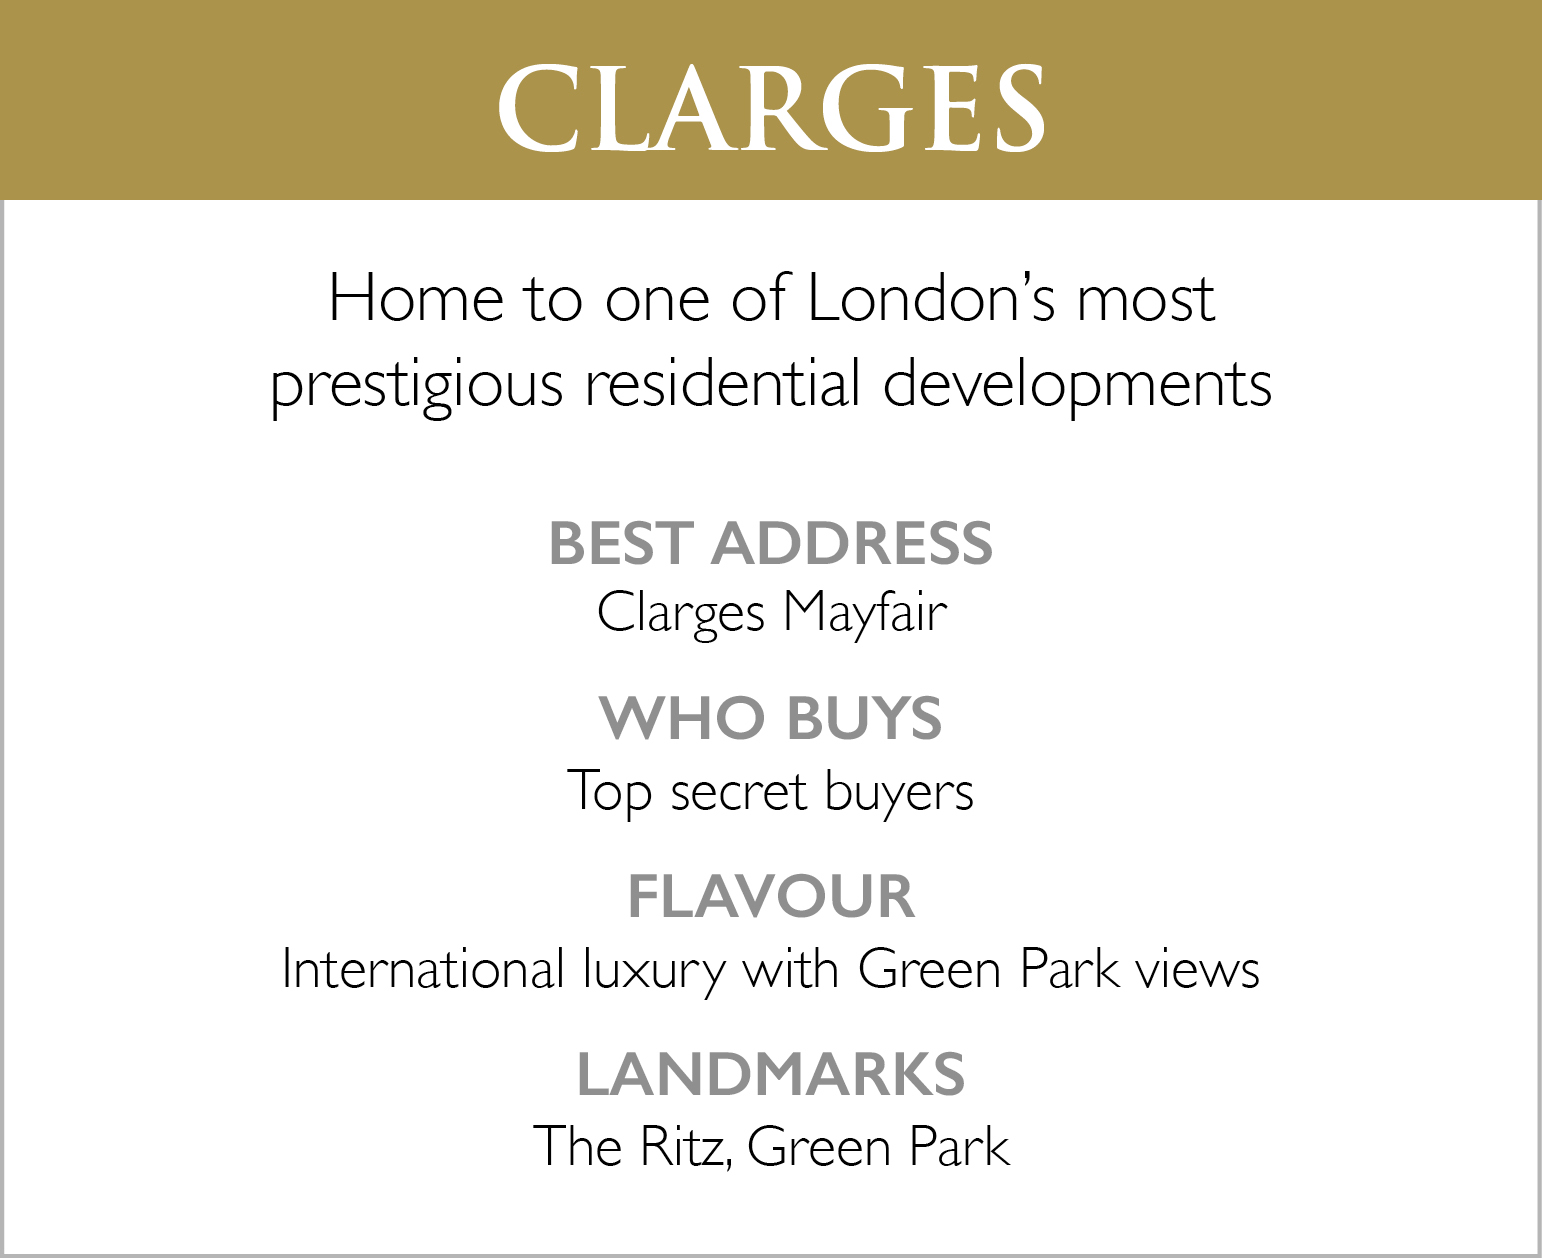 Clarges List of Features